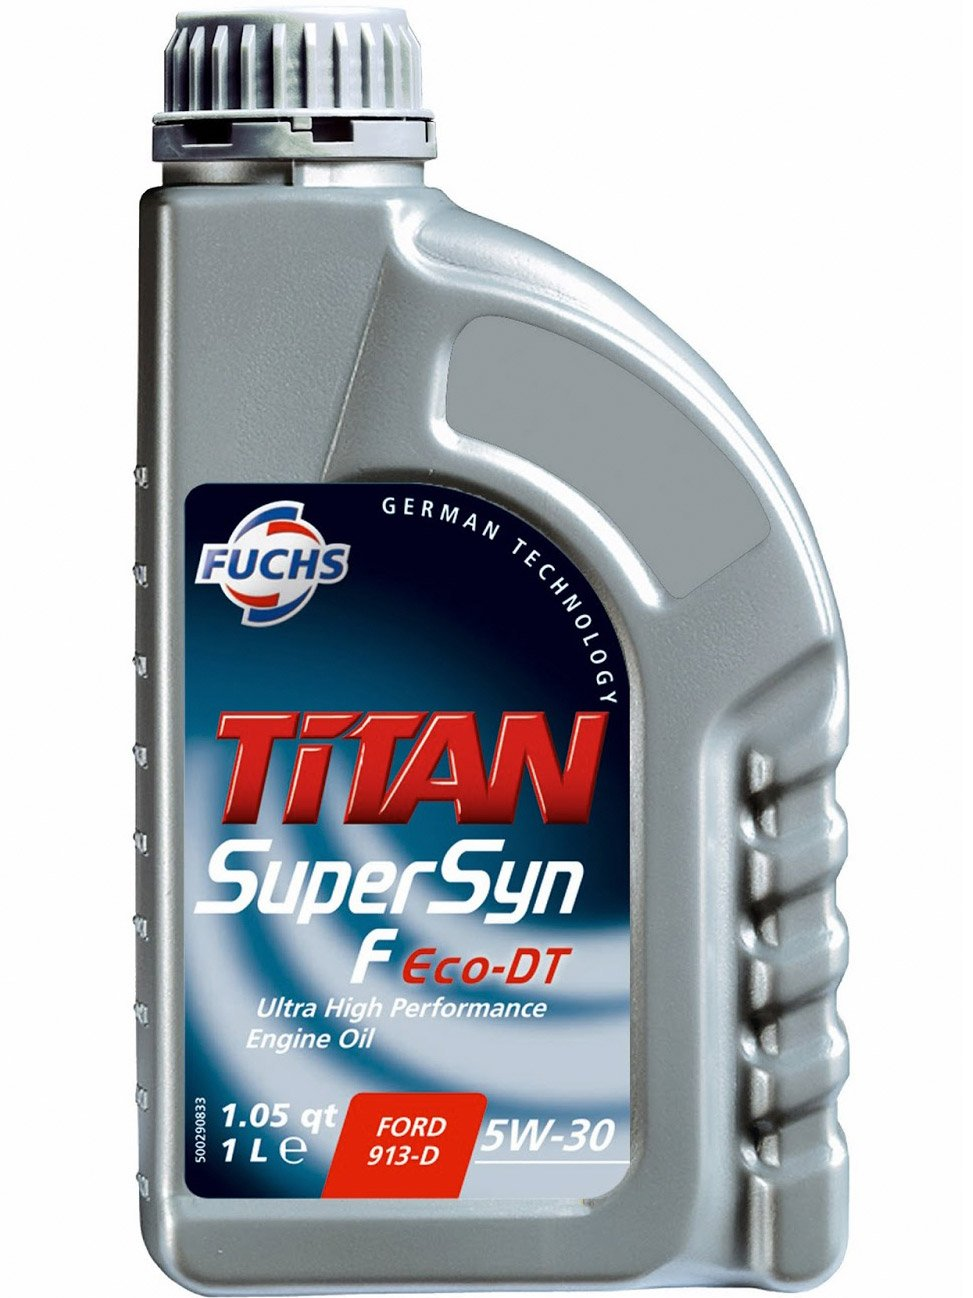 Fuchs Titan SUPERSYN F Eco-DT 5w-30